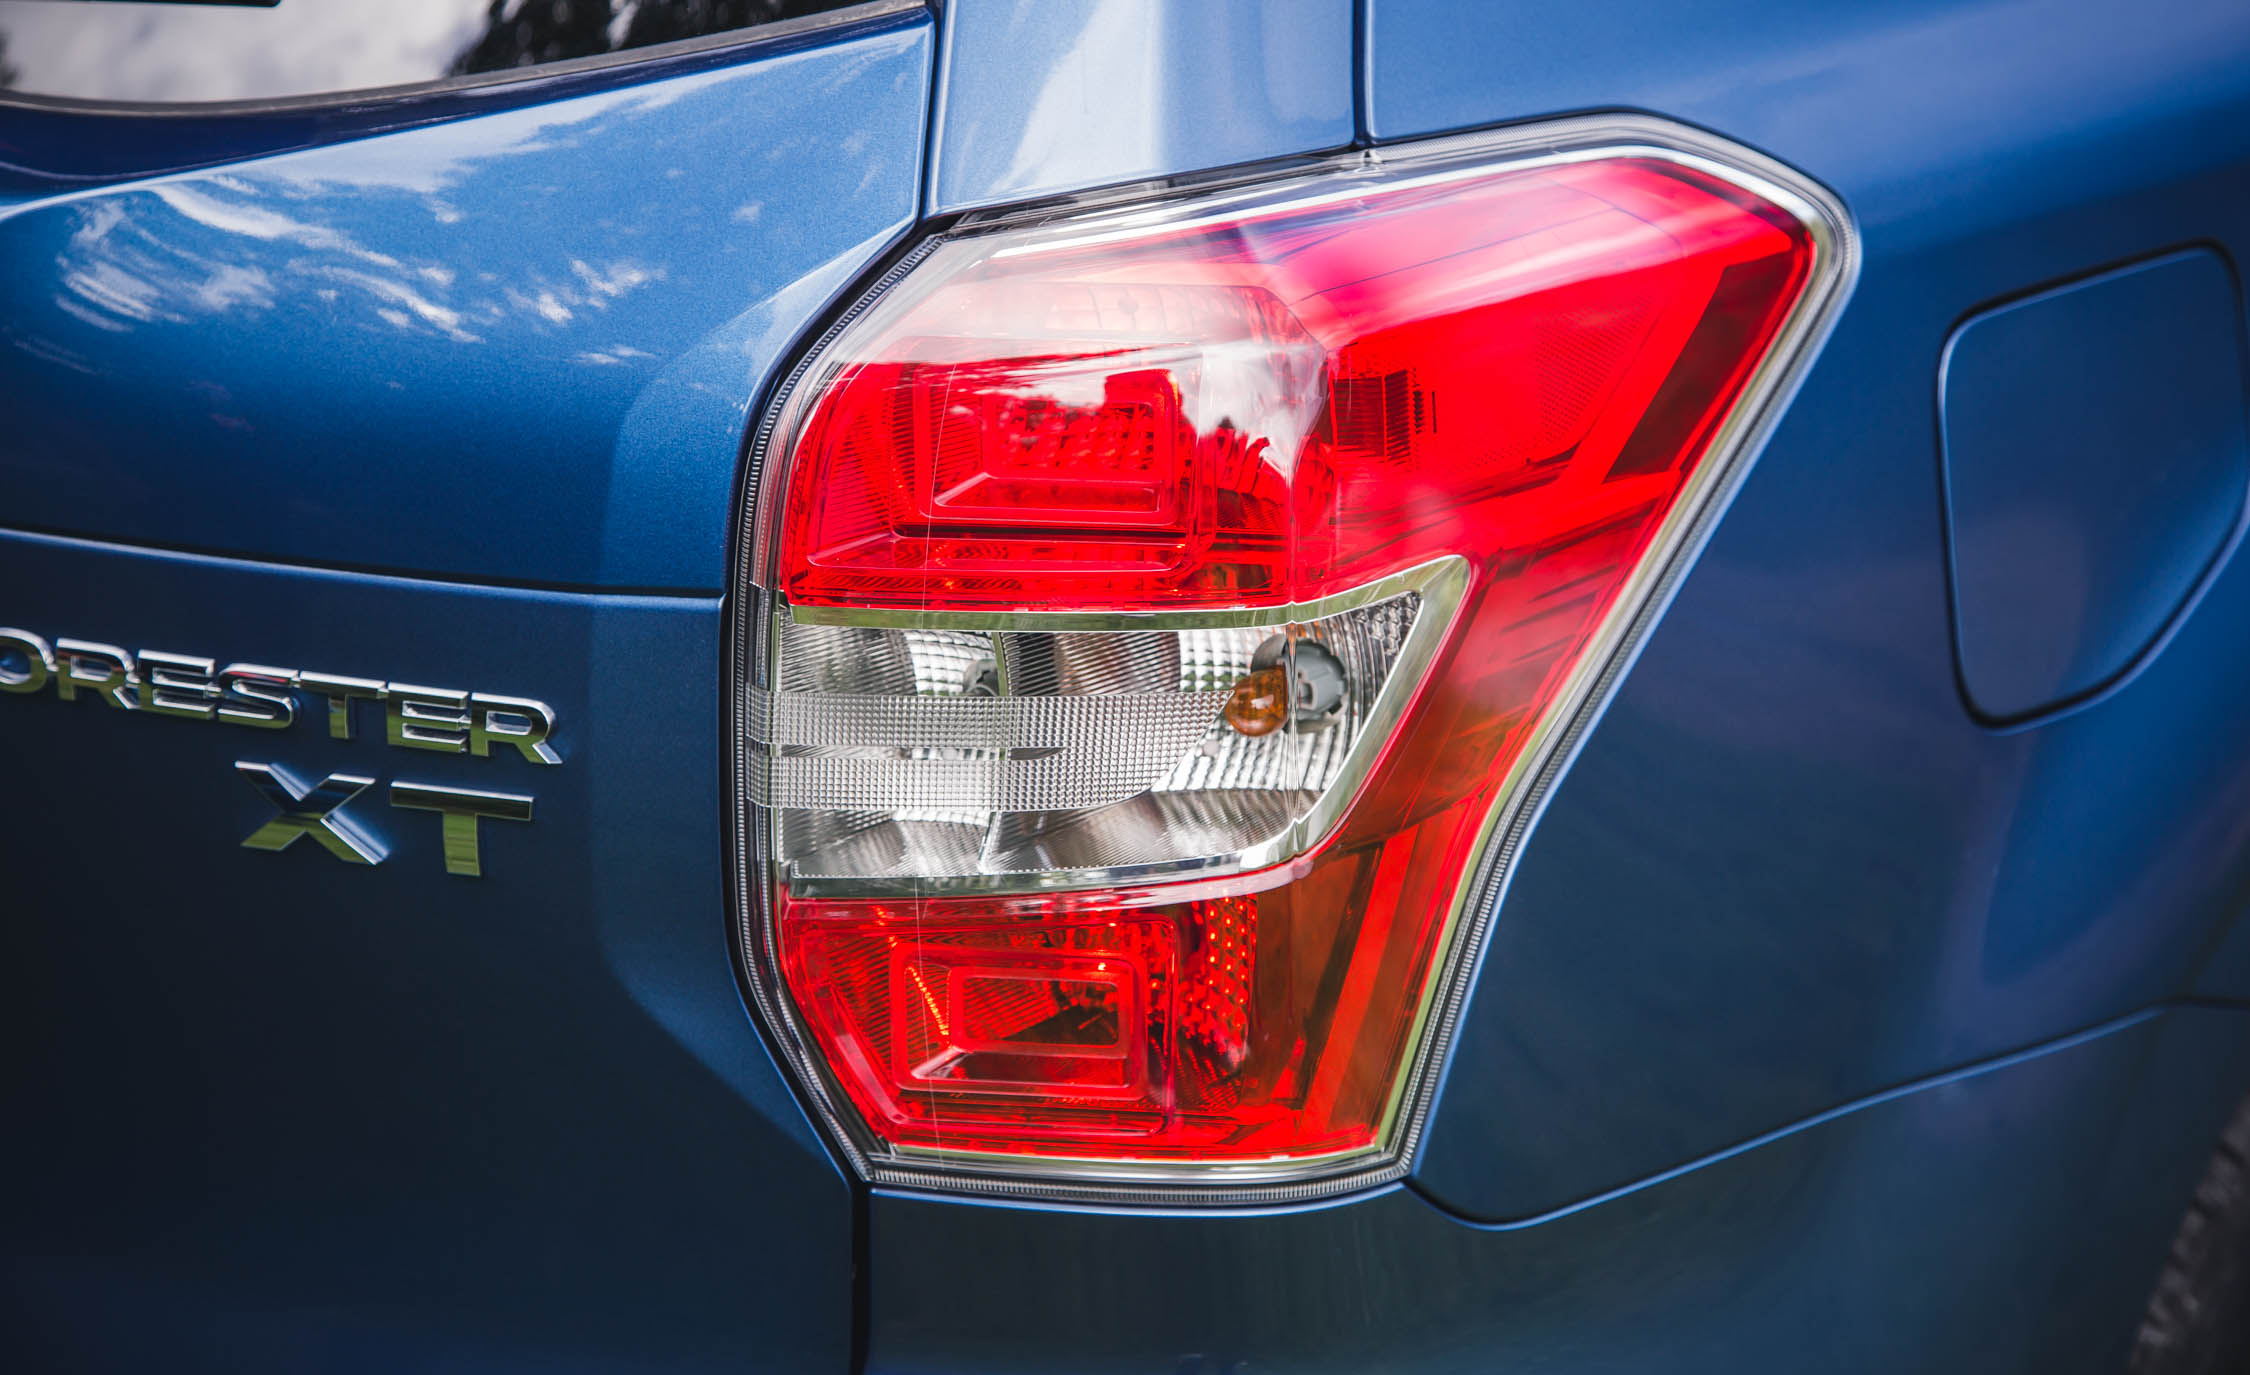 2016 Subaru Forester 2 0xt Touring Exterior Taillight Right (Photo 11 of 29)